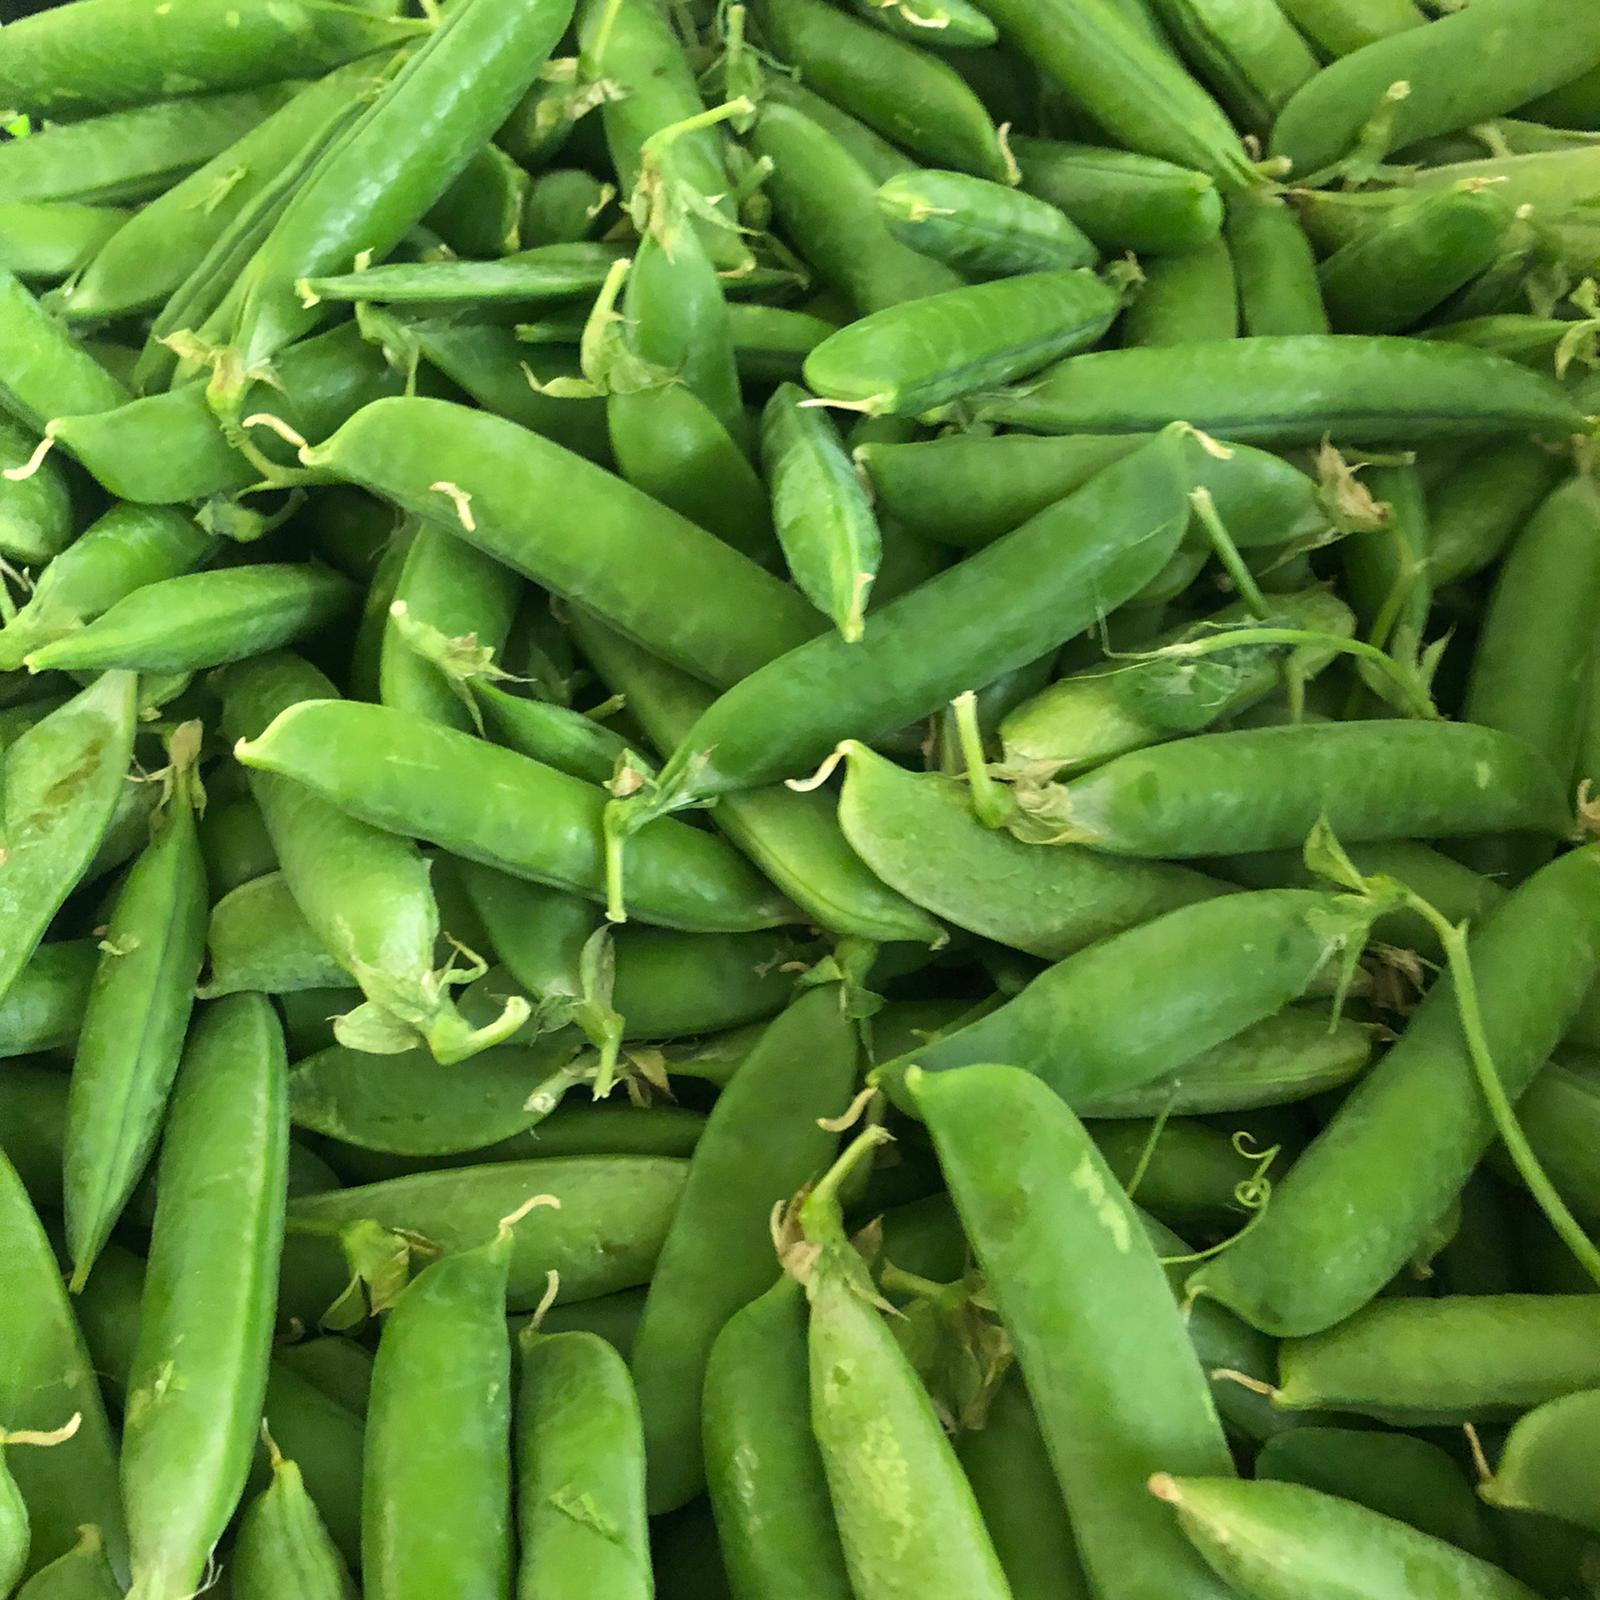 Fresh Yorkshire peas in pods 500g - HGFD Produce